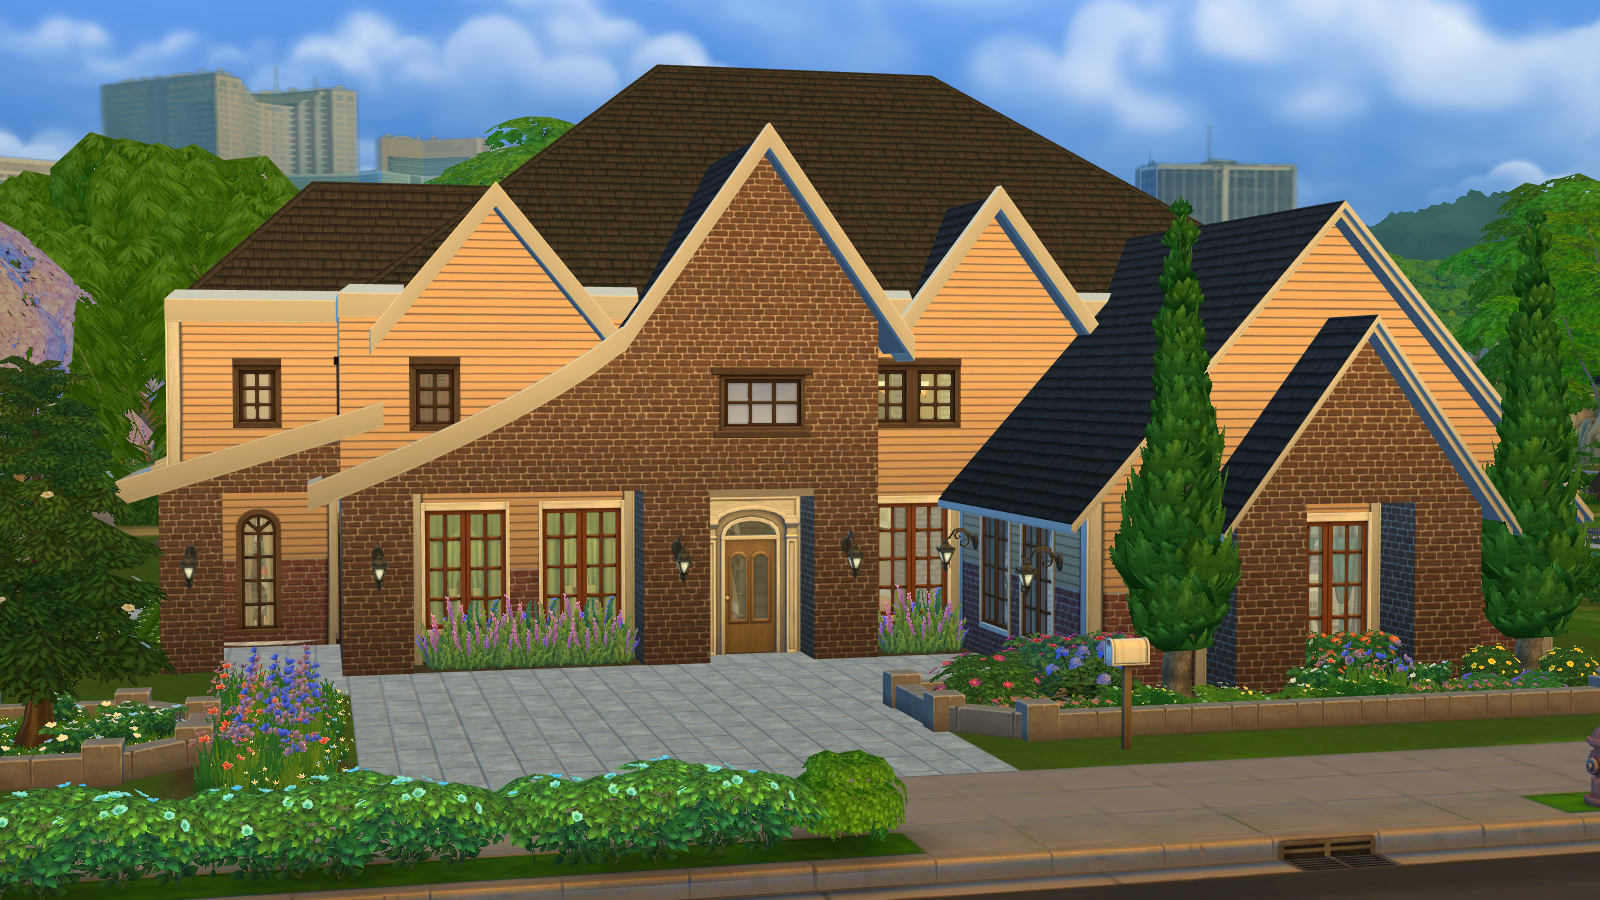 Lacey loves sims suburban dream for Large family home